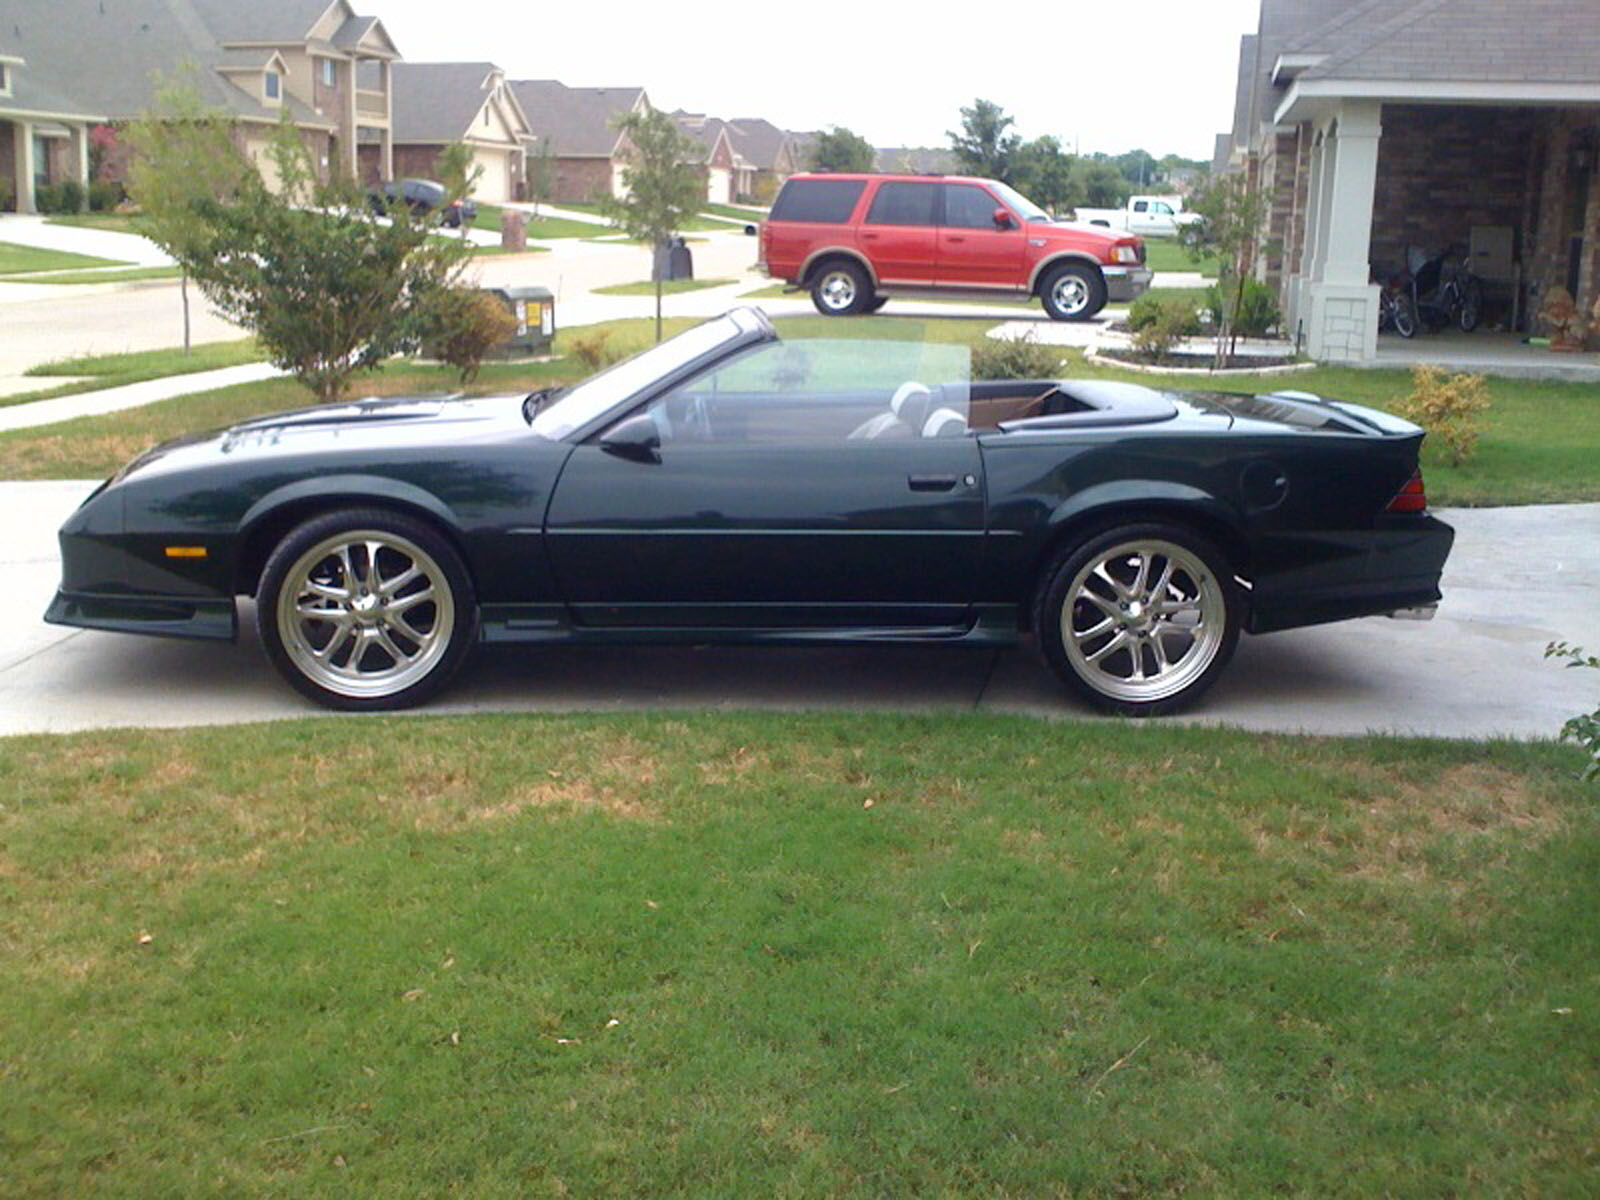 1992 chevrolet camaro camaro rs for sale mansfield texas. Black Bedroom Furniture Sets. Home Design Ideas